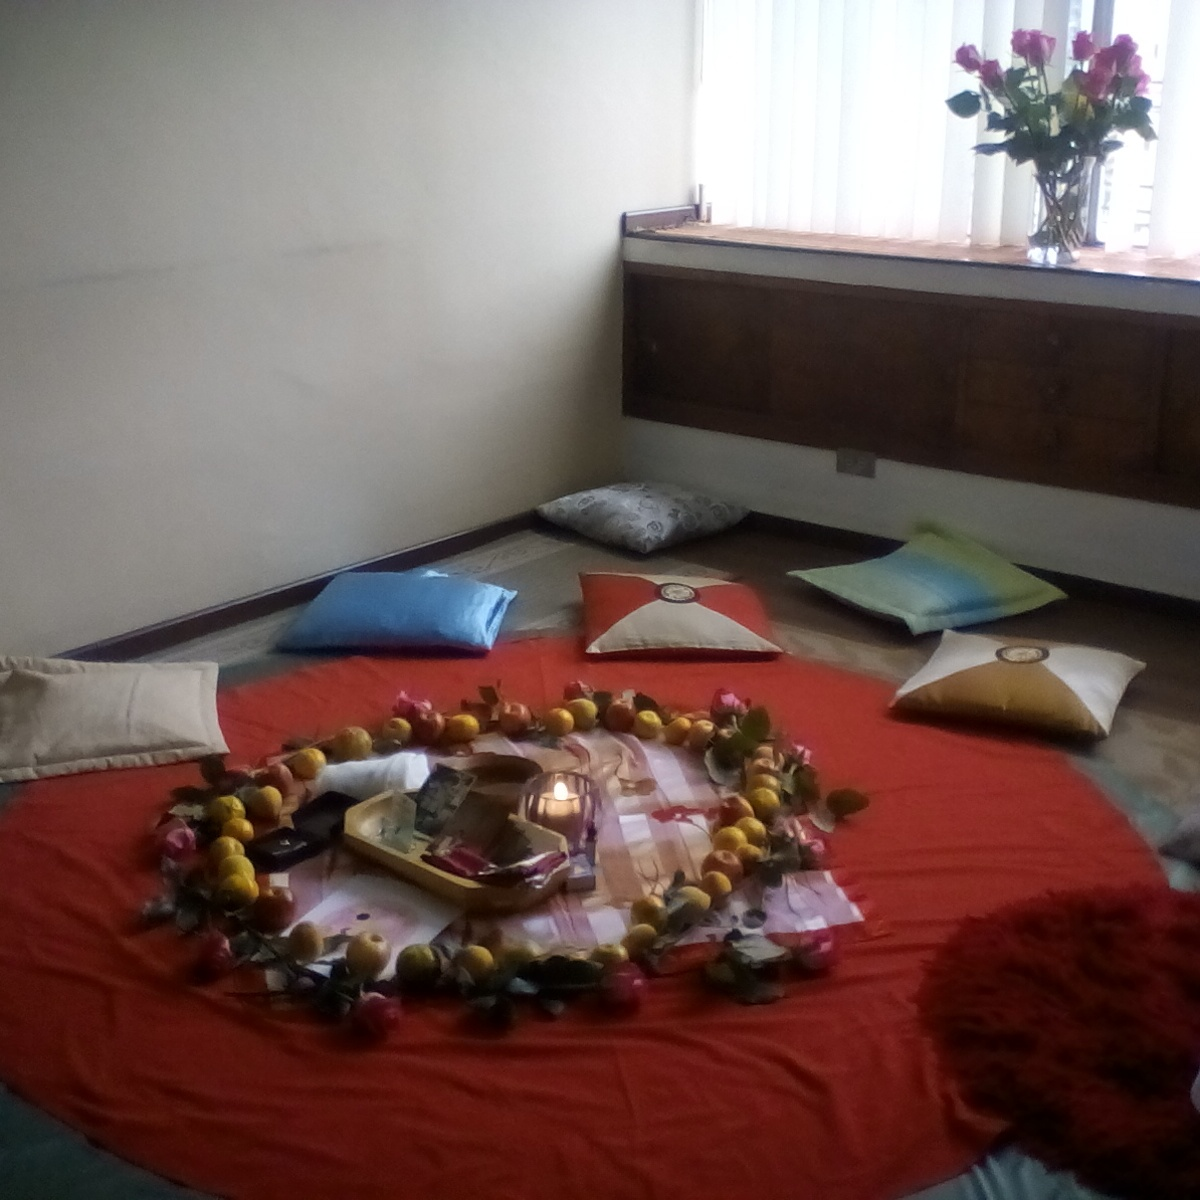 Womb Blessing Group Meditation June 2014 - Quito, Ecuador